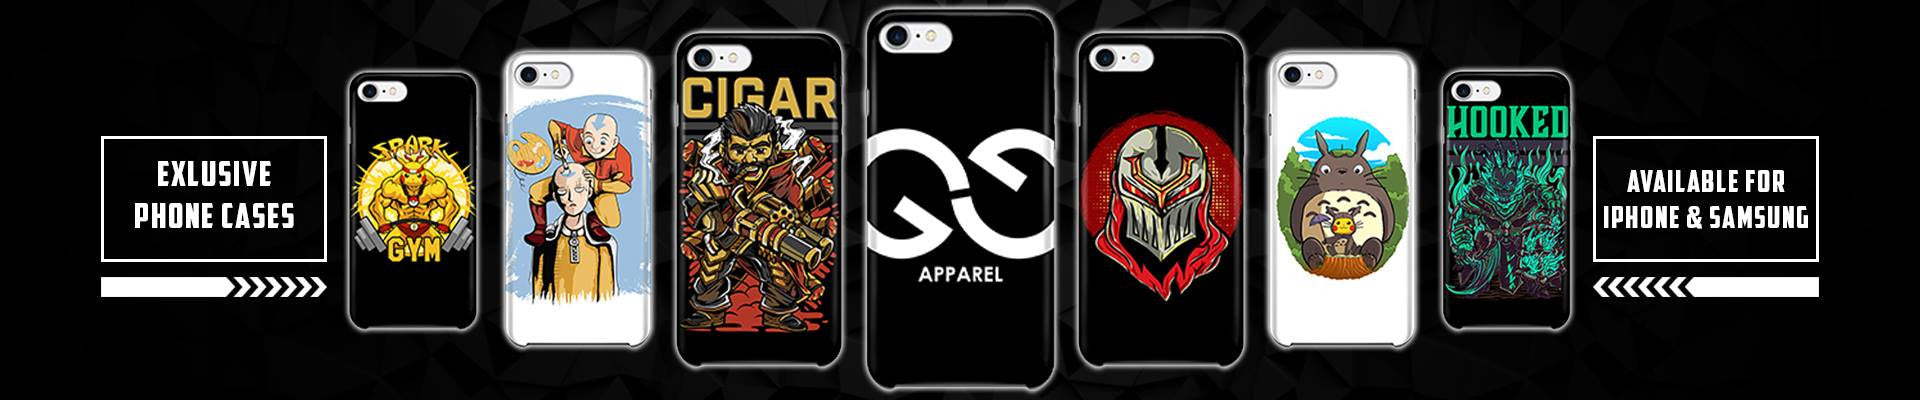 GG Apparel Phone Cases